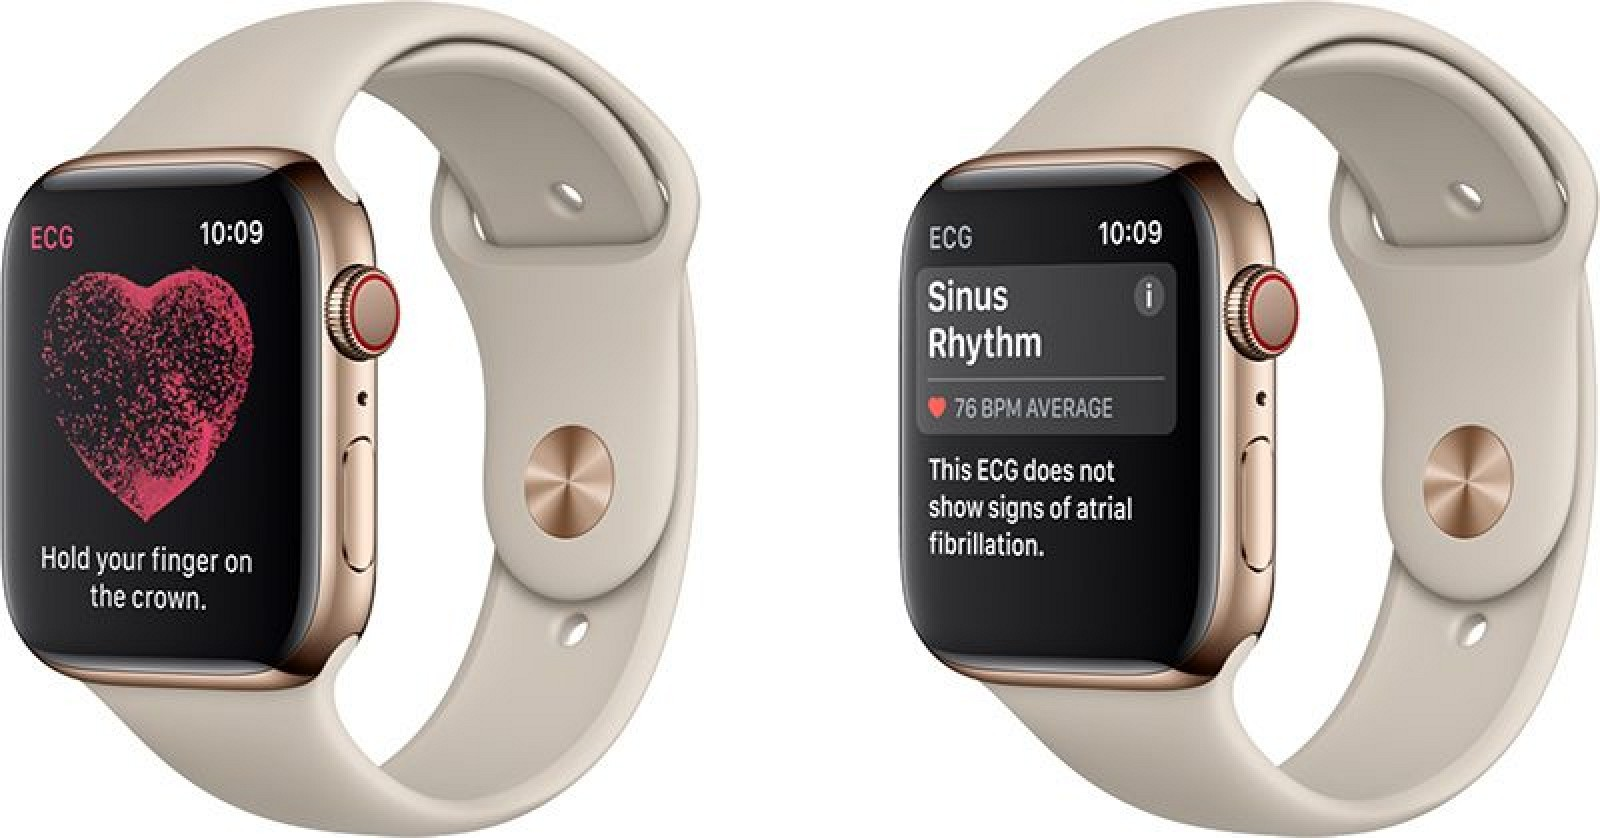 Apple's Watch Series 4 rethinks health, design